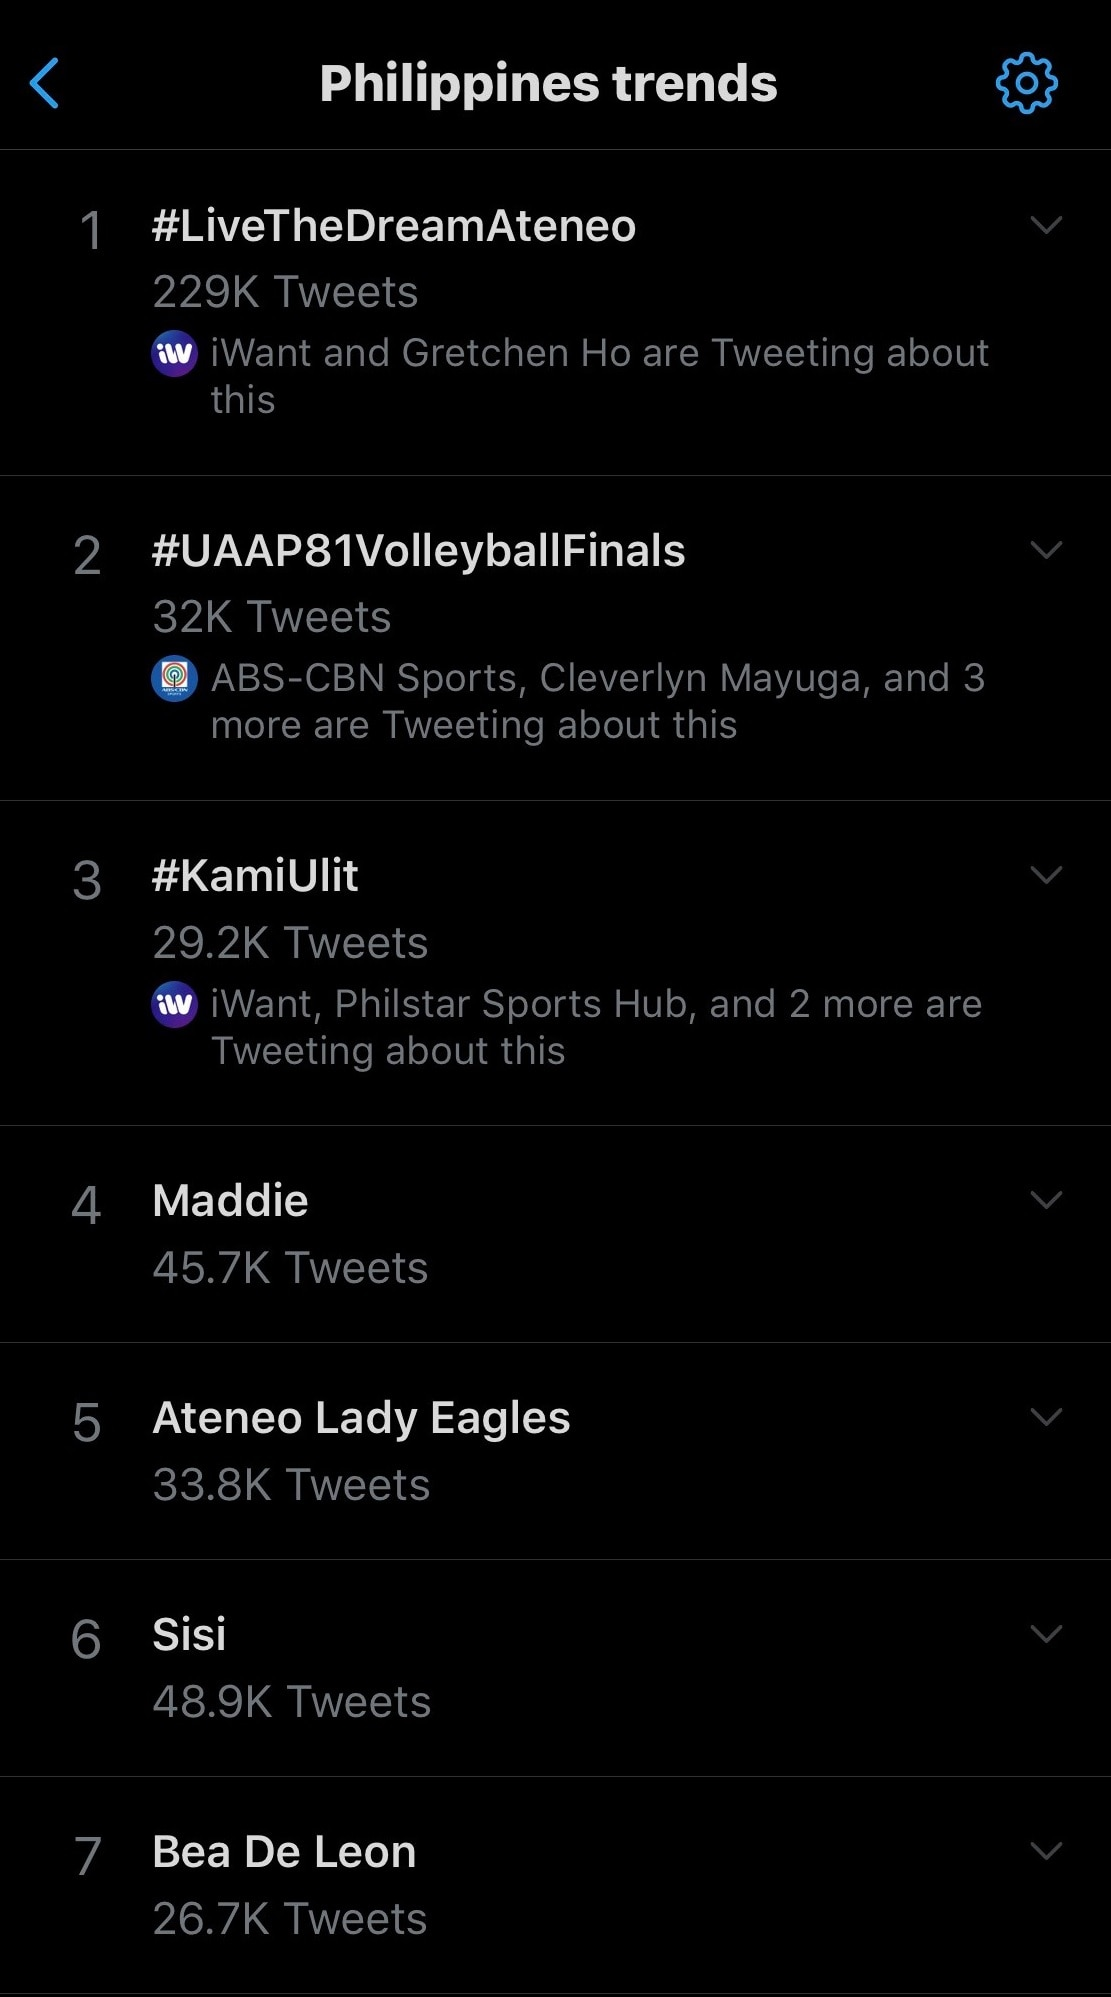 UAAP volleyball related keywords took the top 20 spots again in the trending topics list for the Philippines